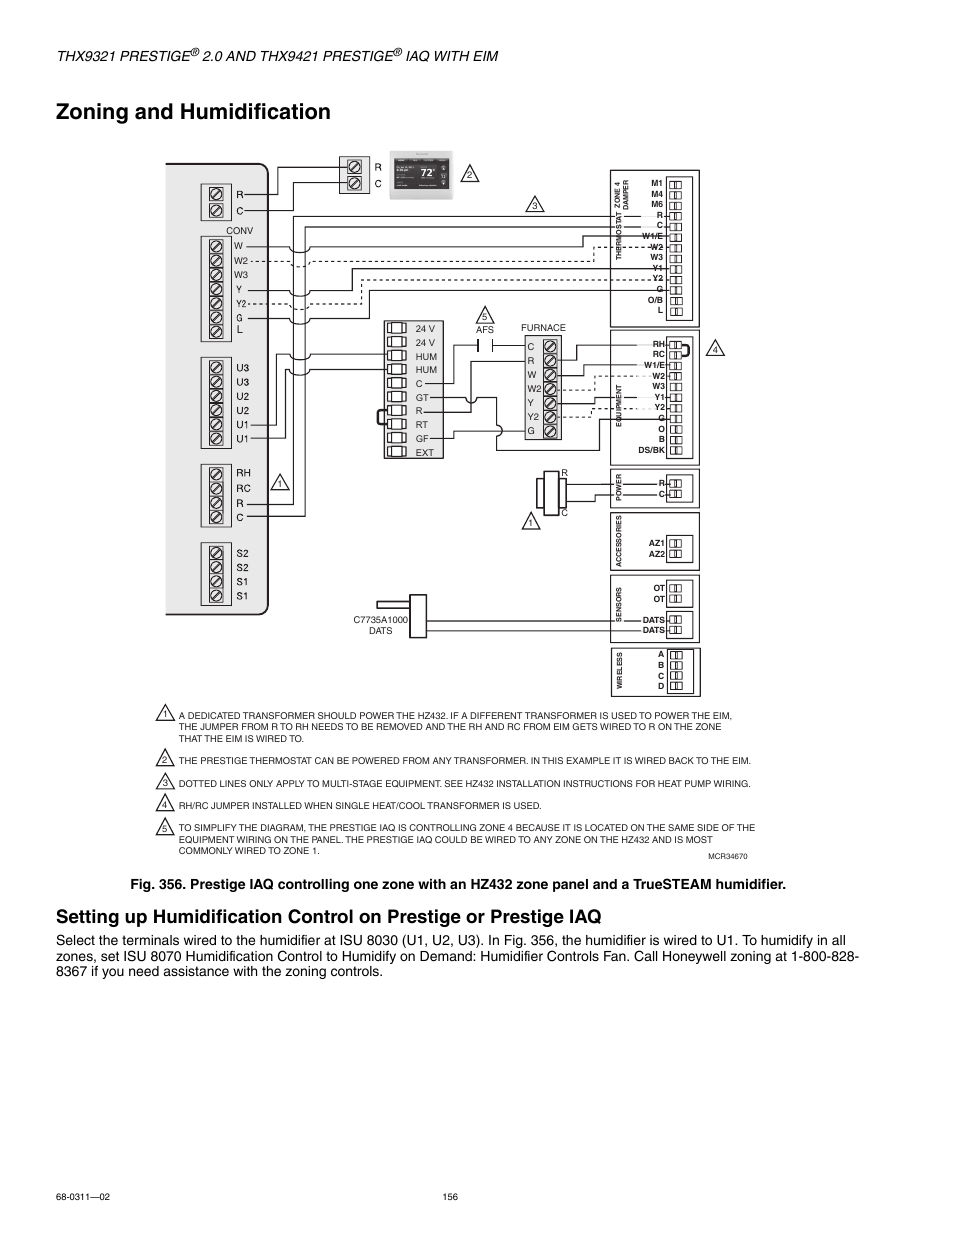 hight resolution of zoning and humidification thx9321 prestige iaq with eim honeywell prestige thx9321 user manual page 156 160